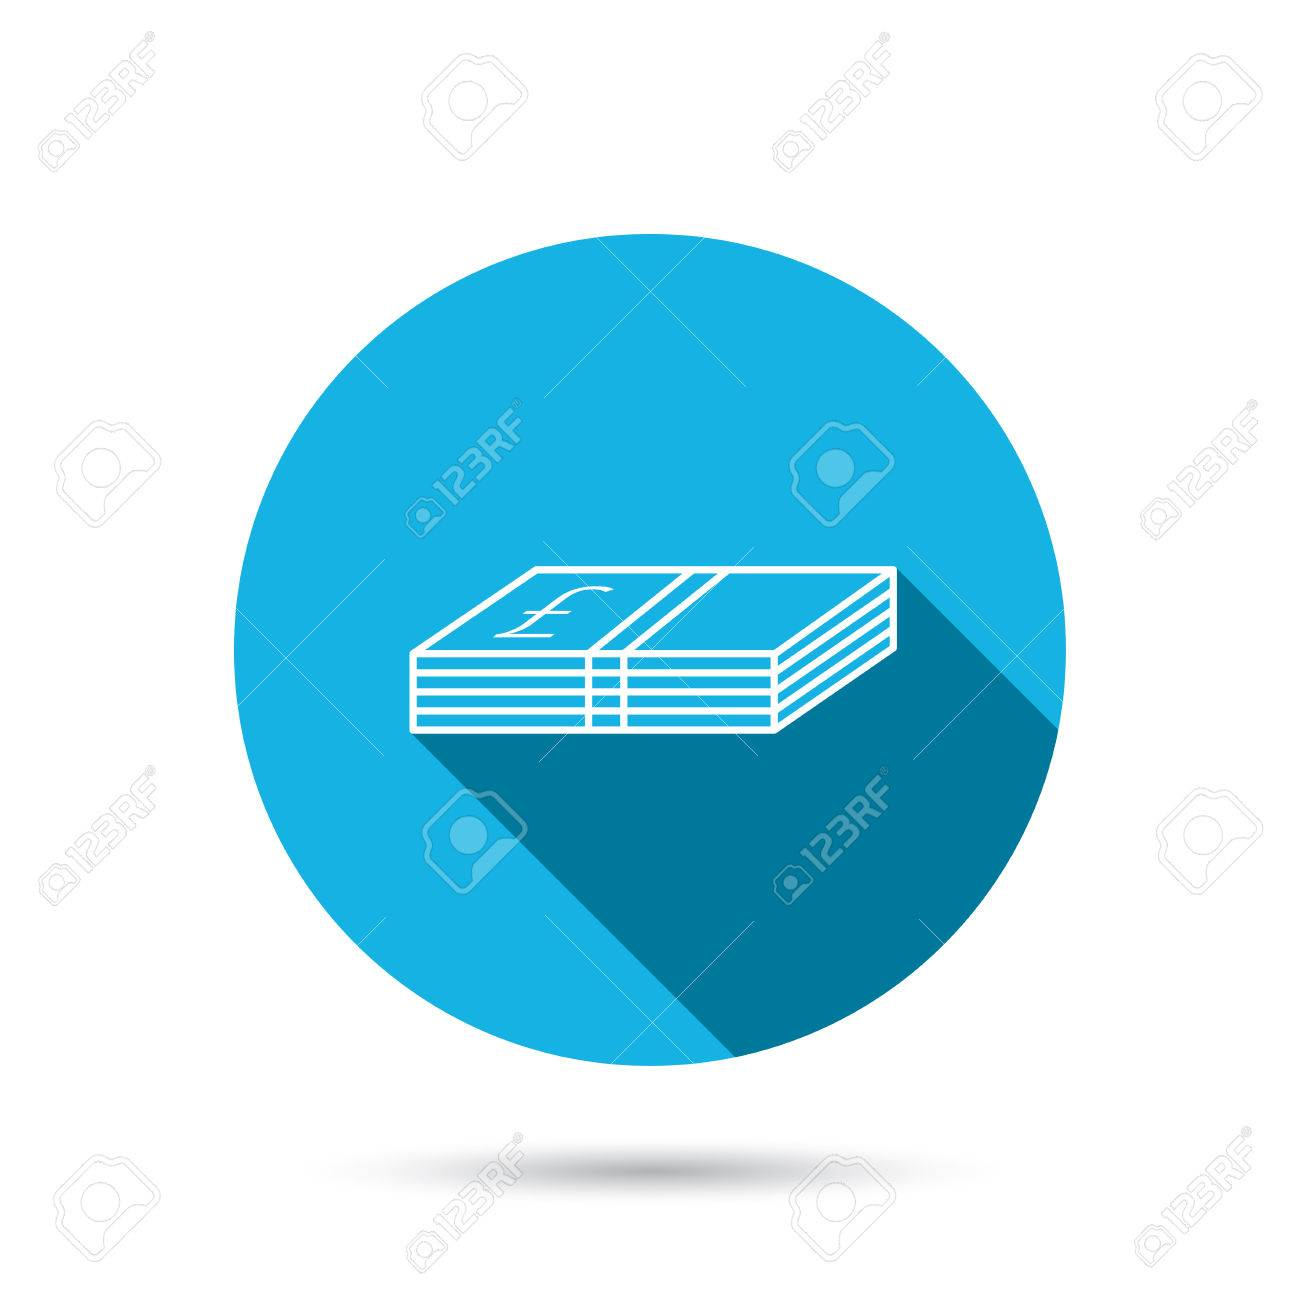 Cash icon pound money sign gbp currency symbol blue flat circle pound money sign gbp currency symbol blue flat circle button with buycottarizona Choice Image